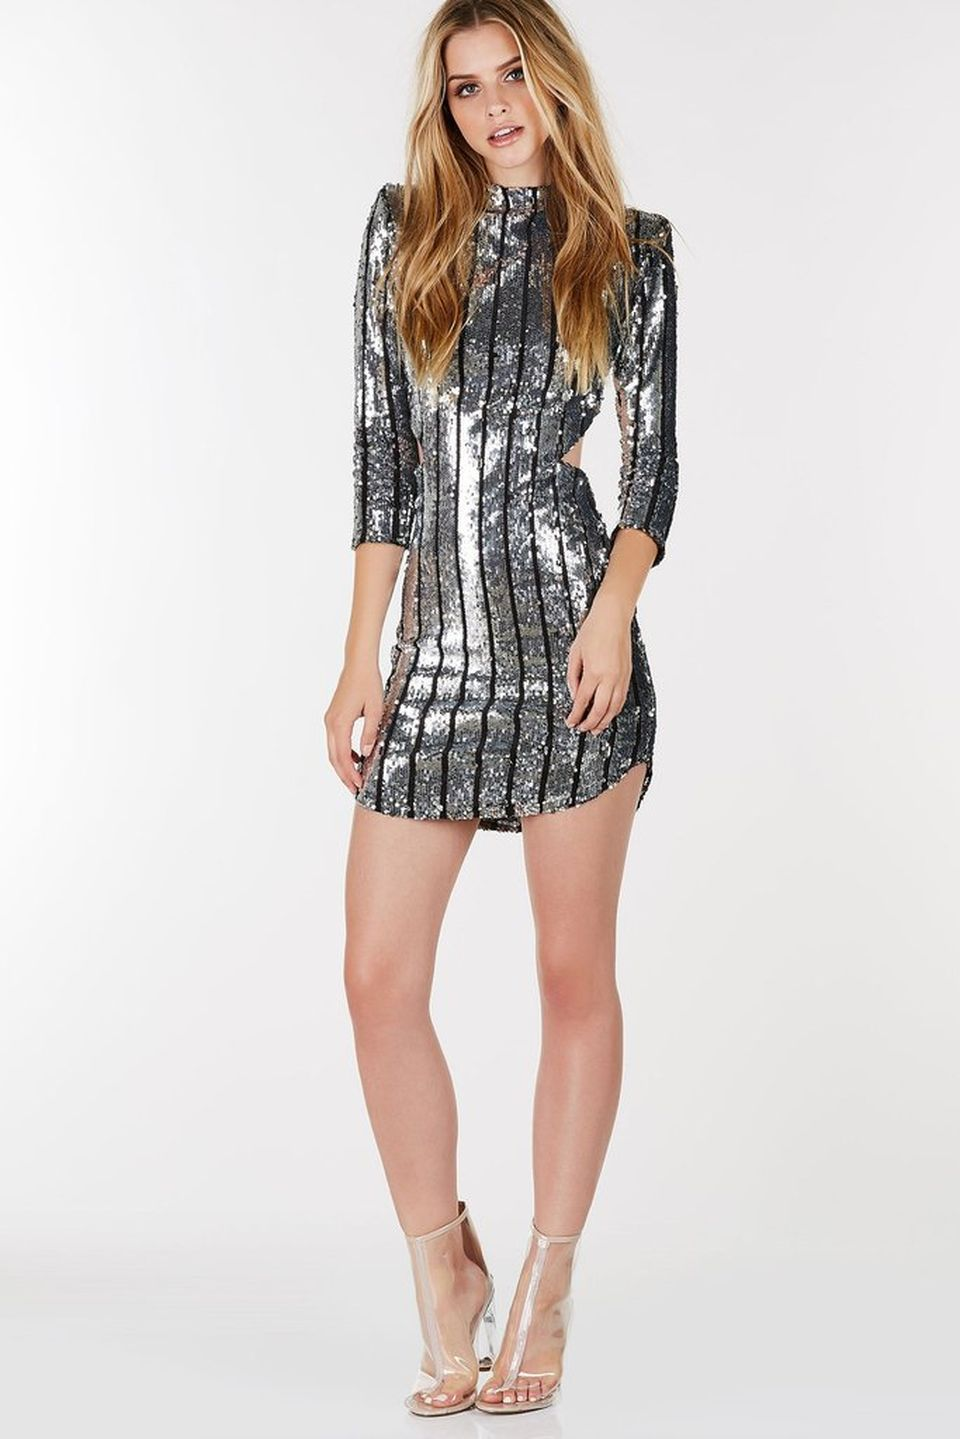 100+ Sequin Dress for New Year Eve Party and Night Out in